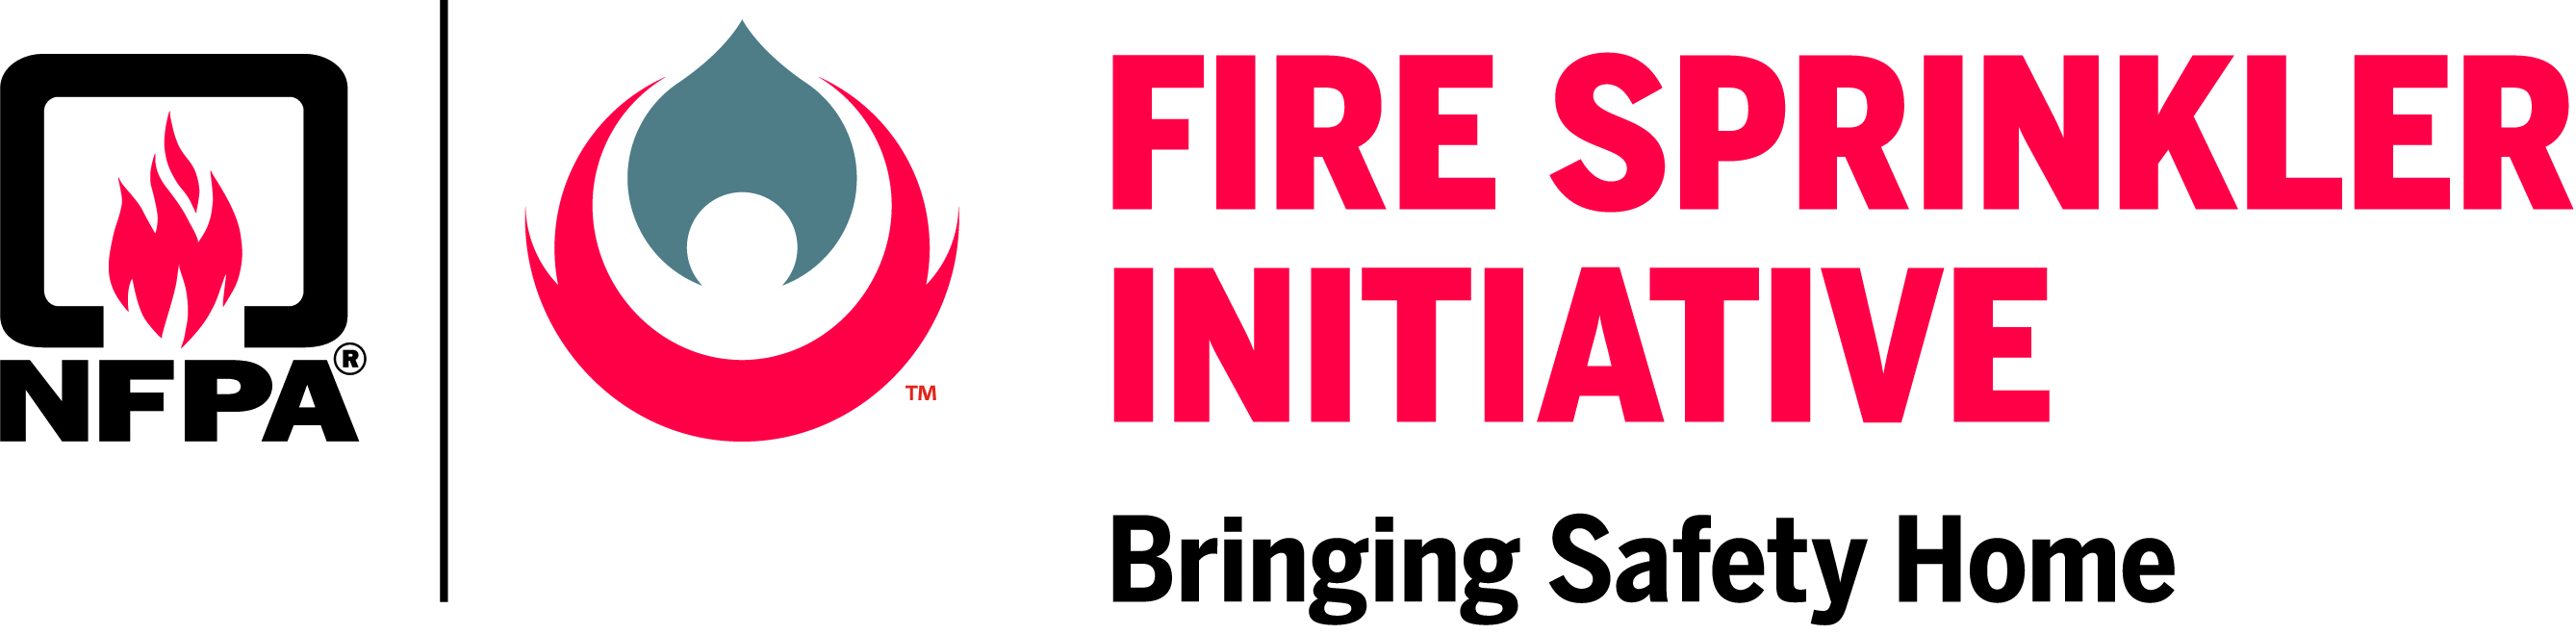 Fire Sprinkler Initiative logo